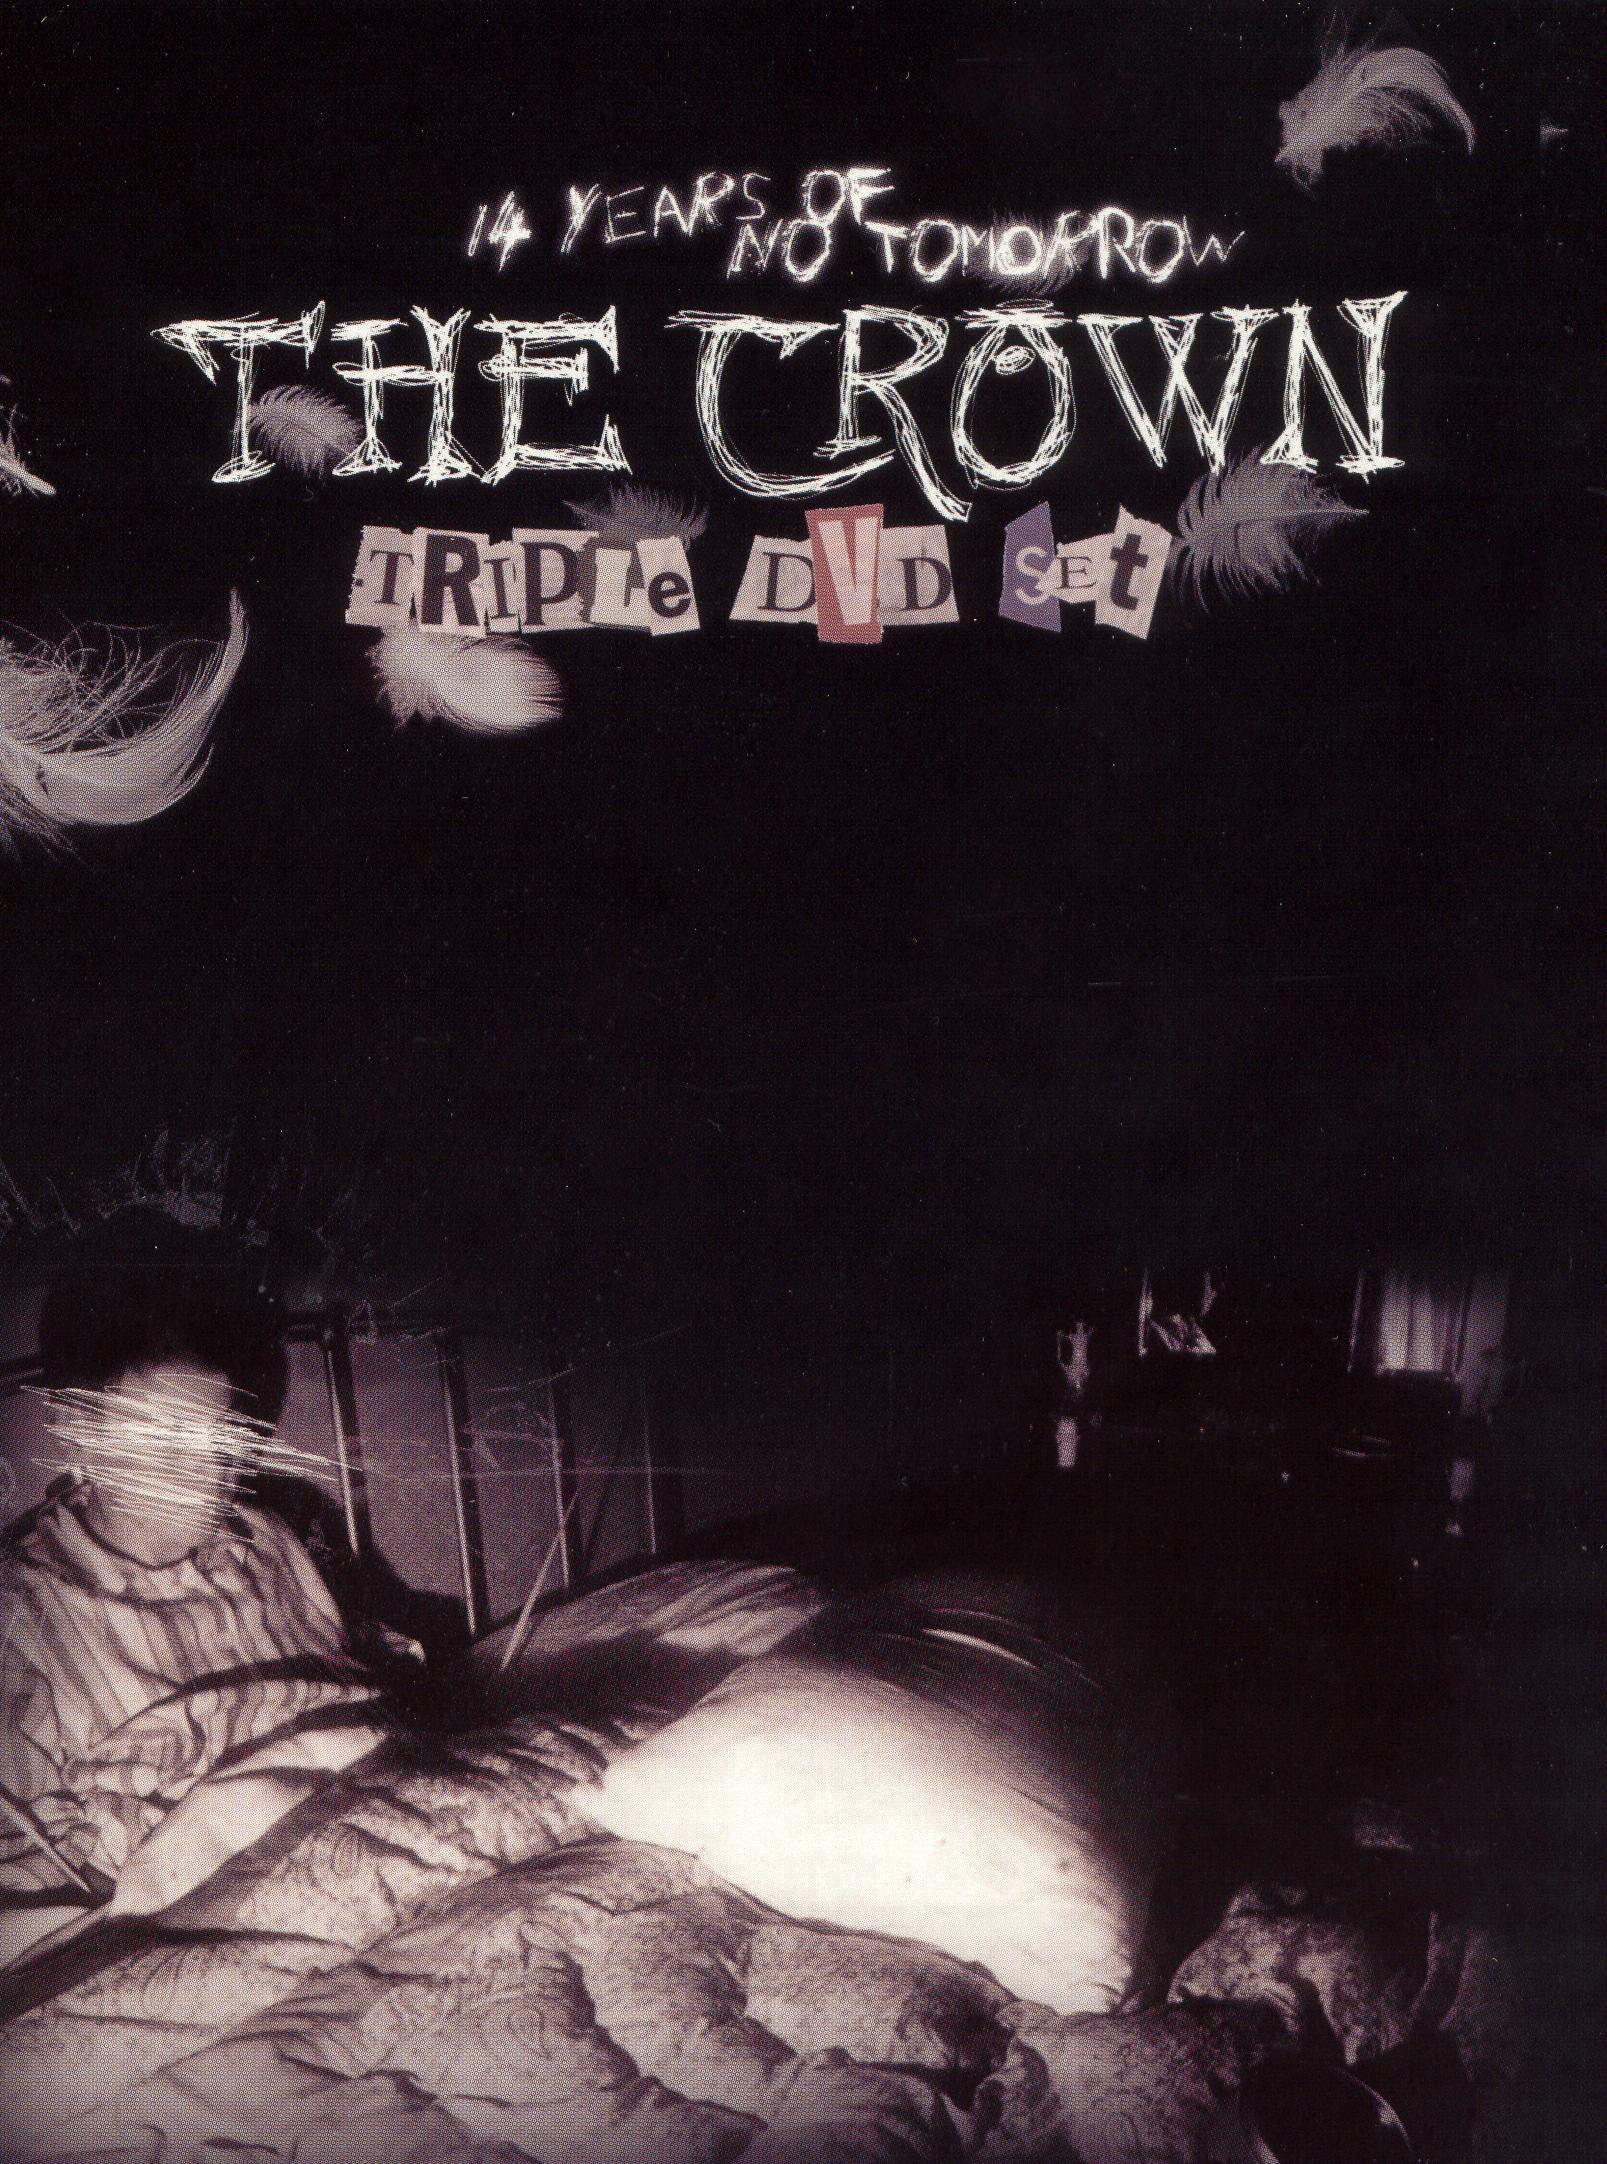 The Crown: 14 Years of No Tomorrow